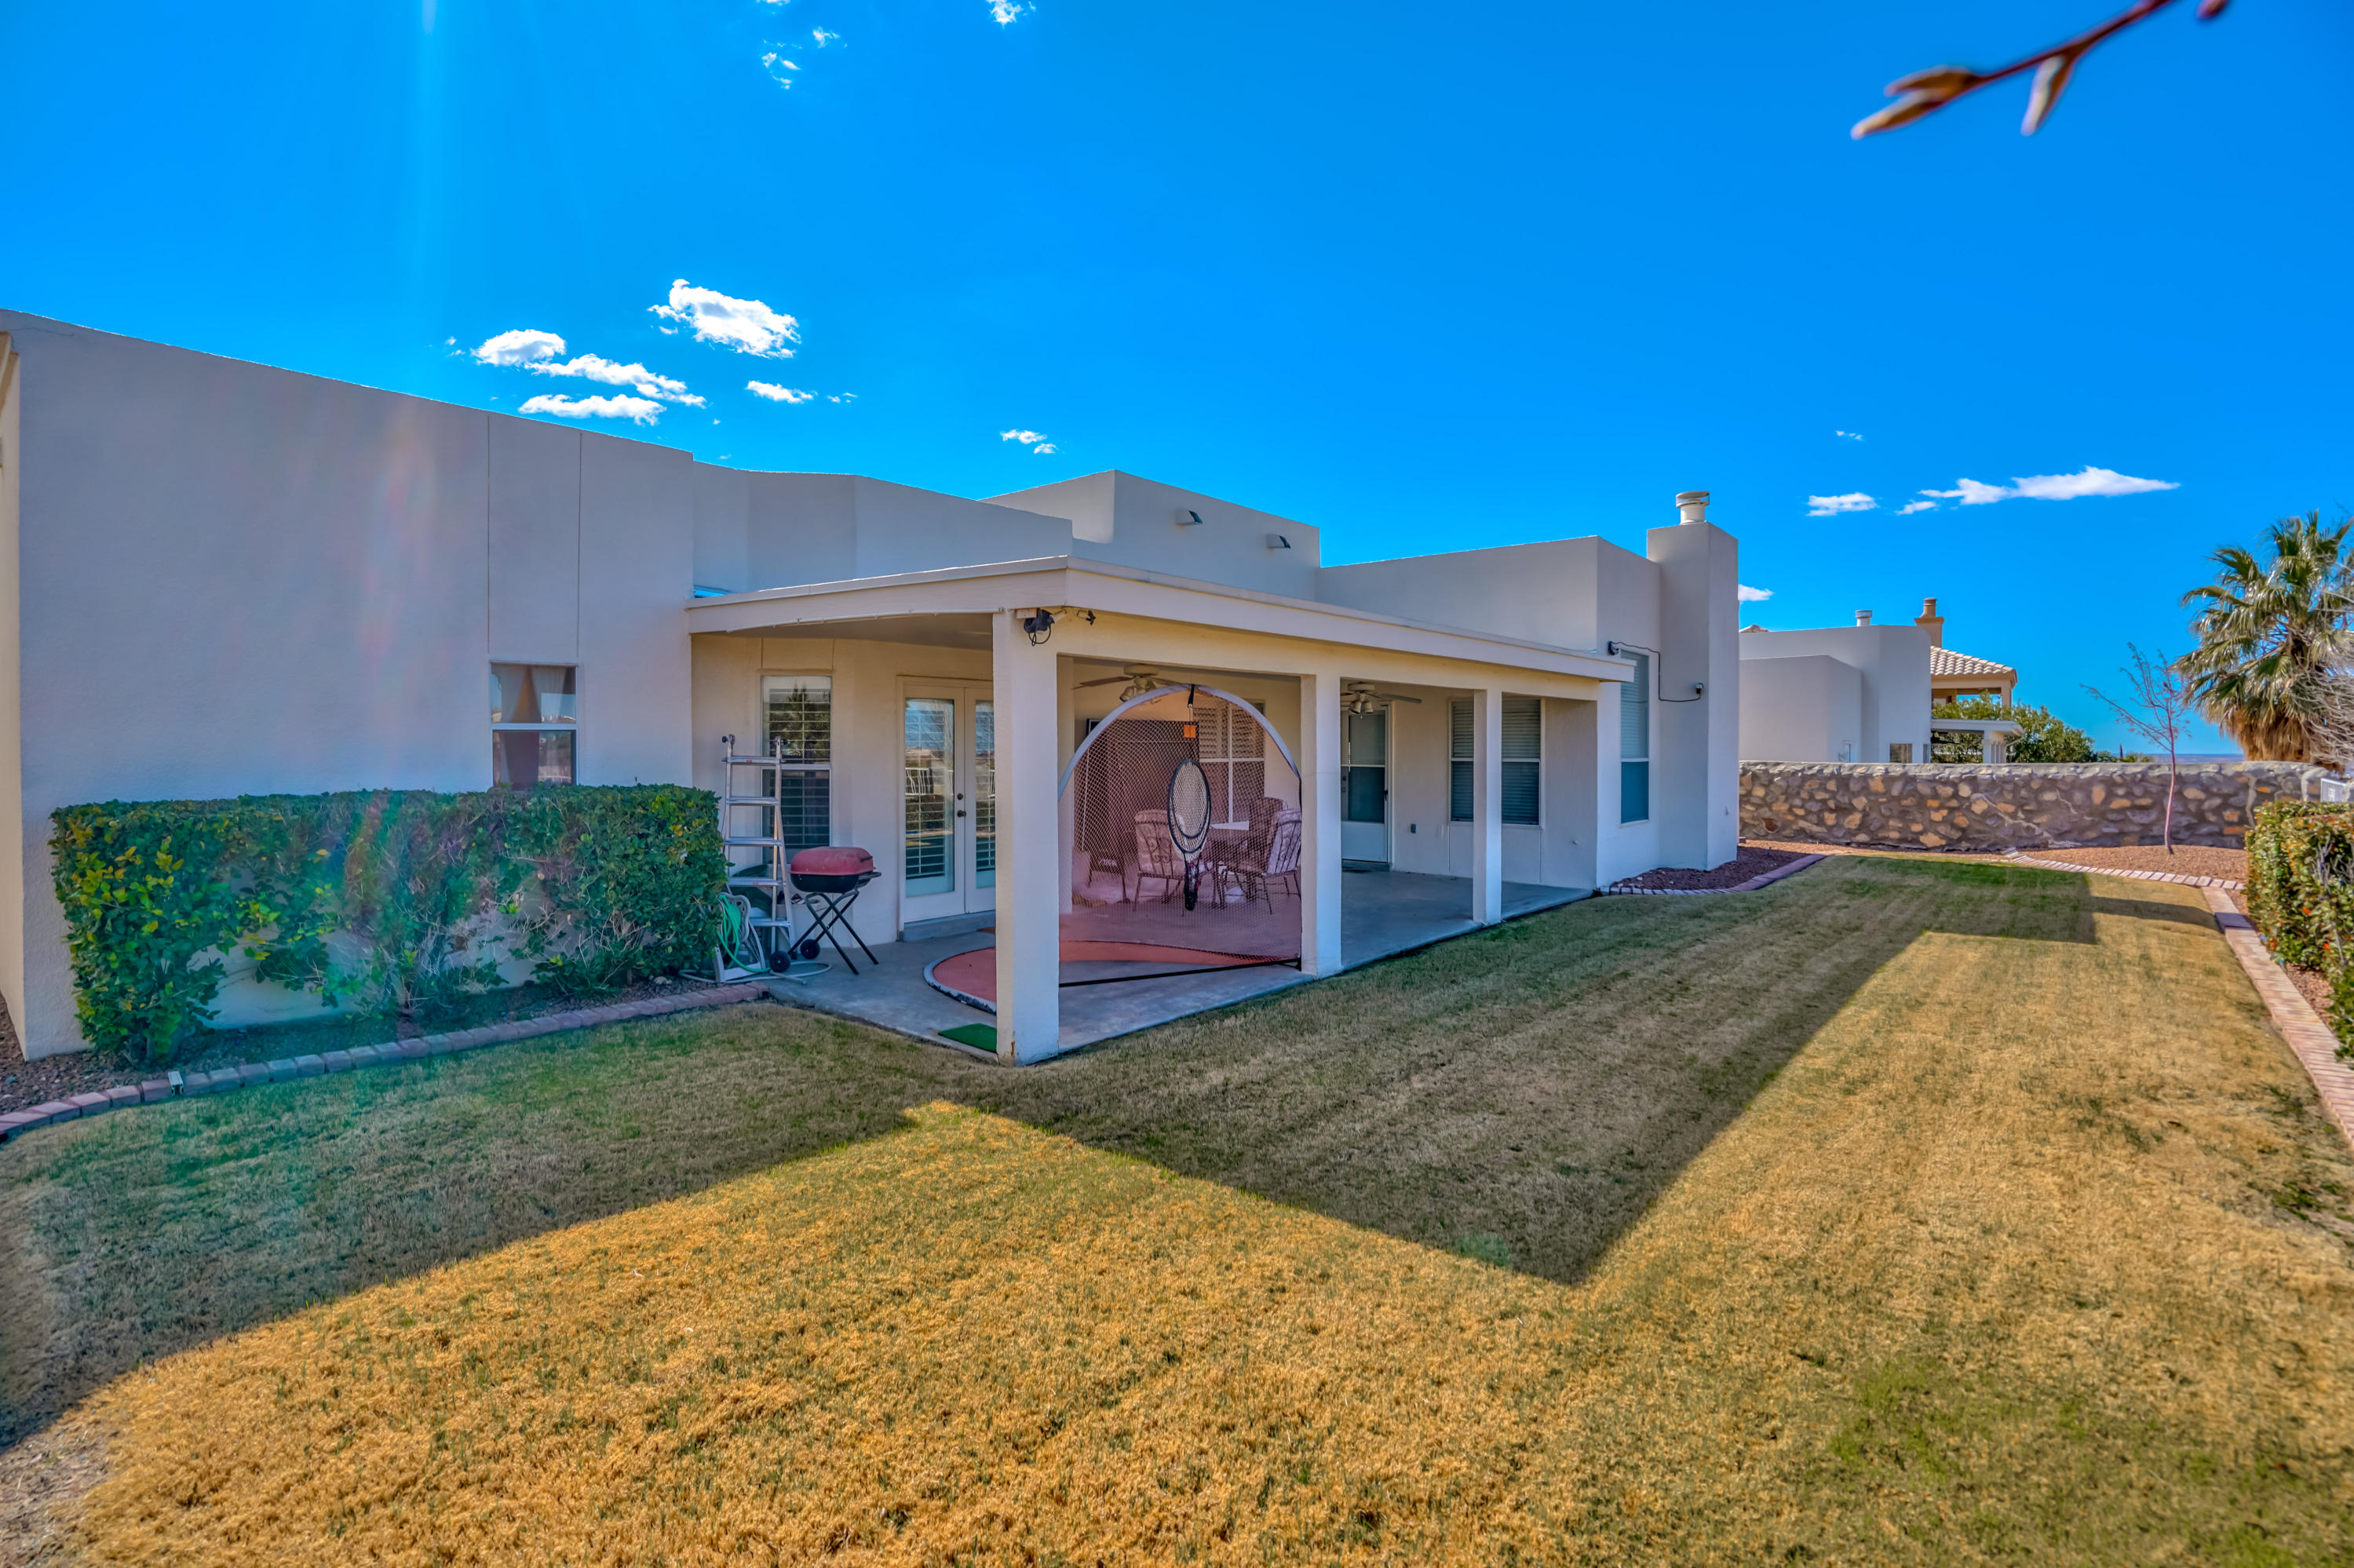 6209 La Posta, El Paso, Texas 79912, 5 Bedrooms Bedrooms, ,3 BathroomsBathrooms,Residential,For sale,La Posta,833599